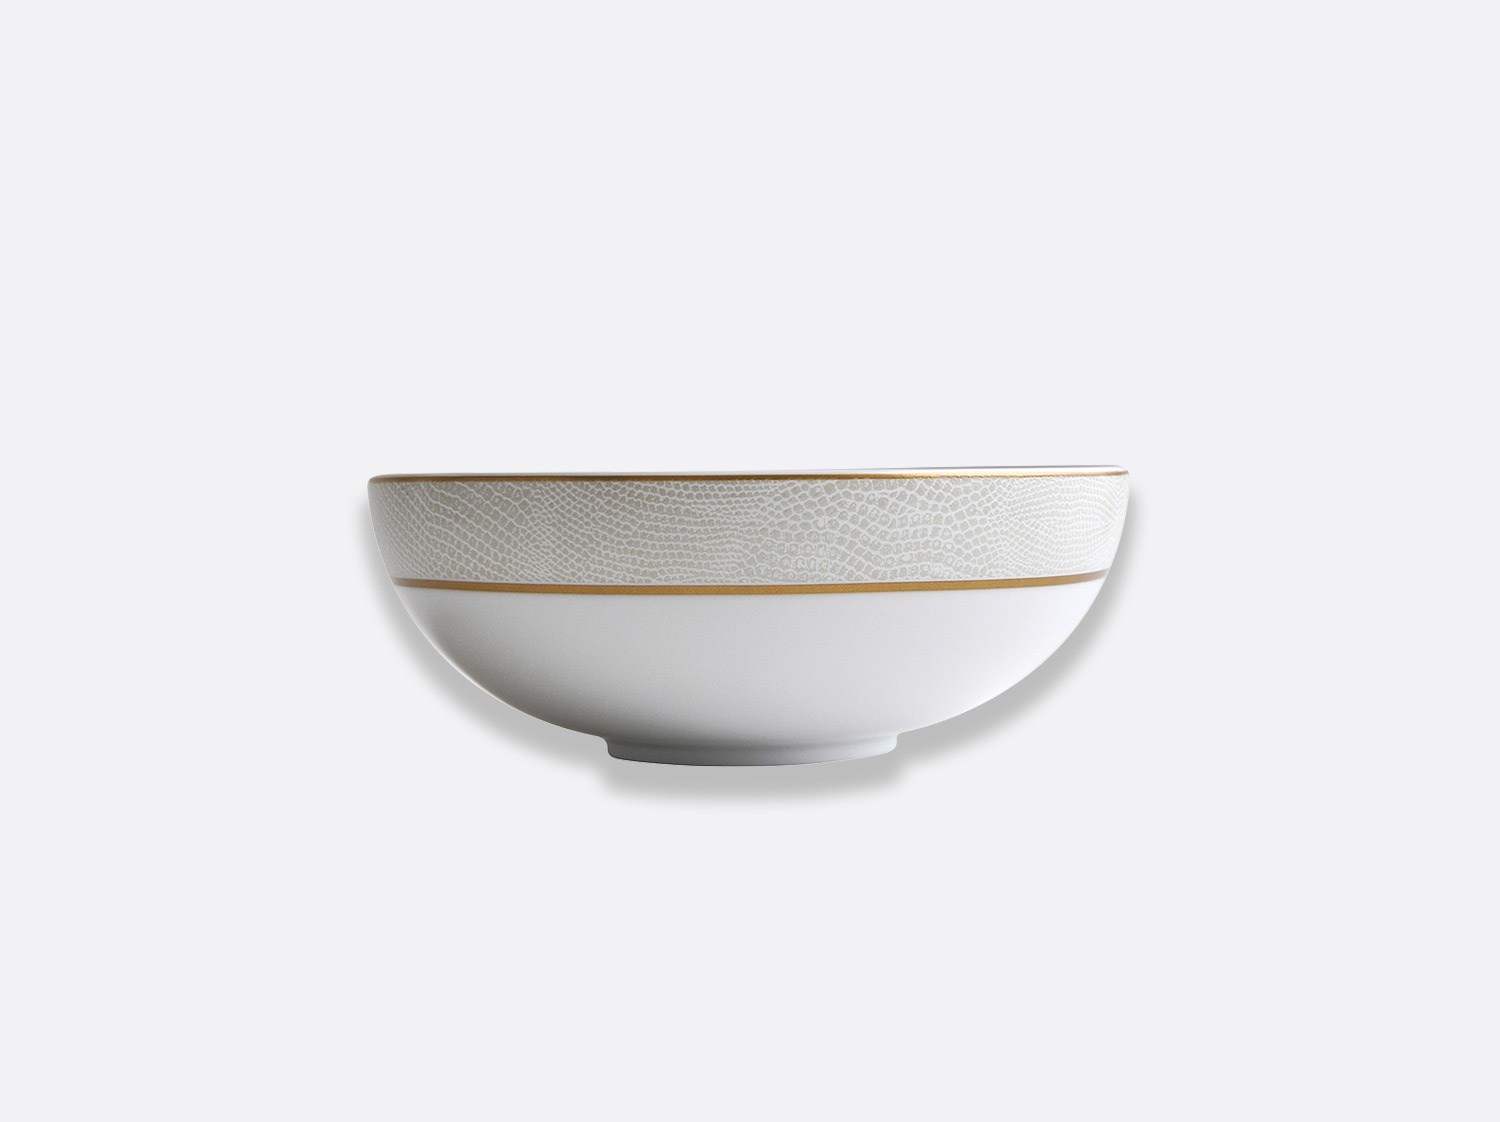 Bol D.17 cm H. 7 cm en porcelaine de la collection Sauvage Or Blanc Bernardaud